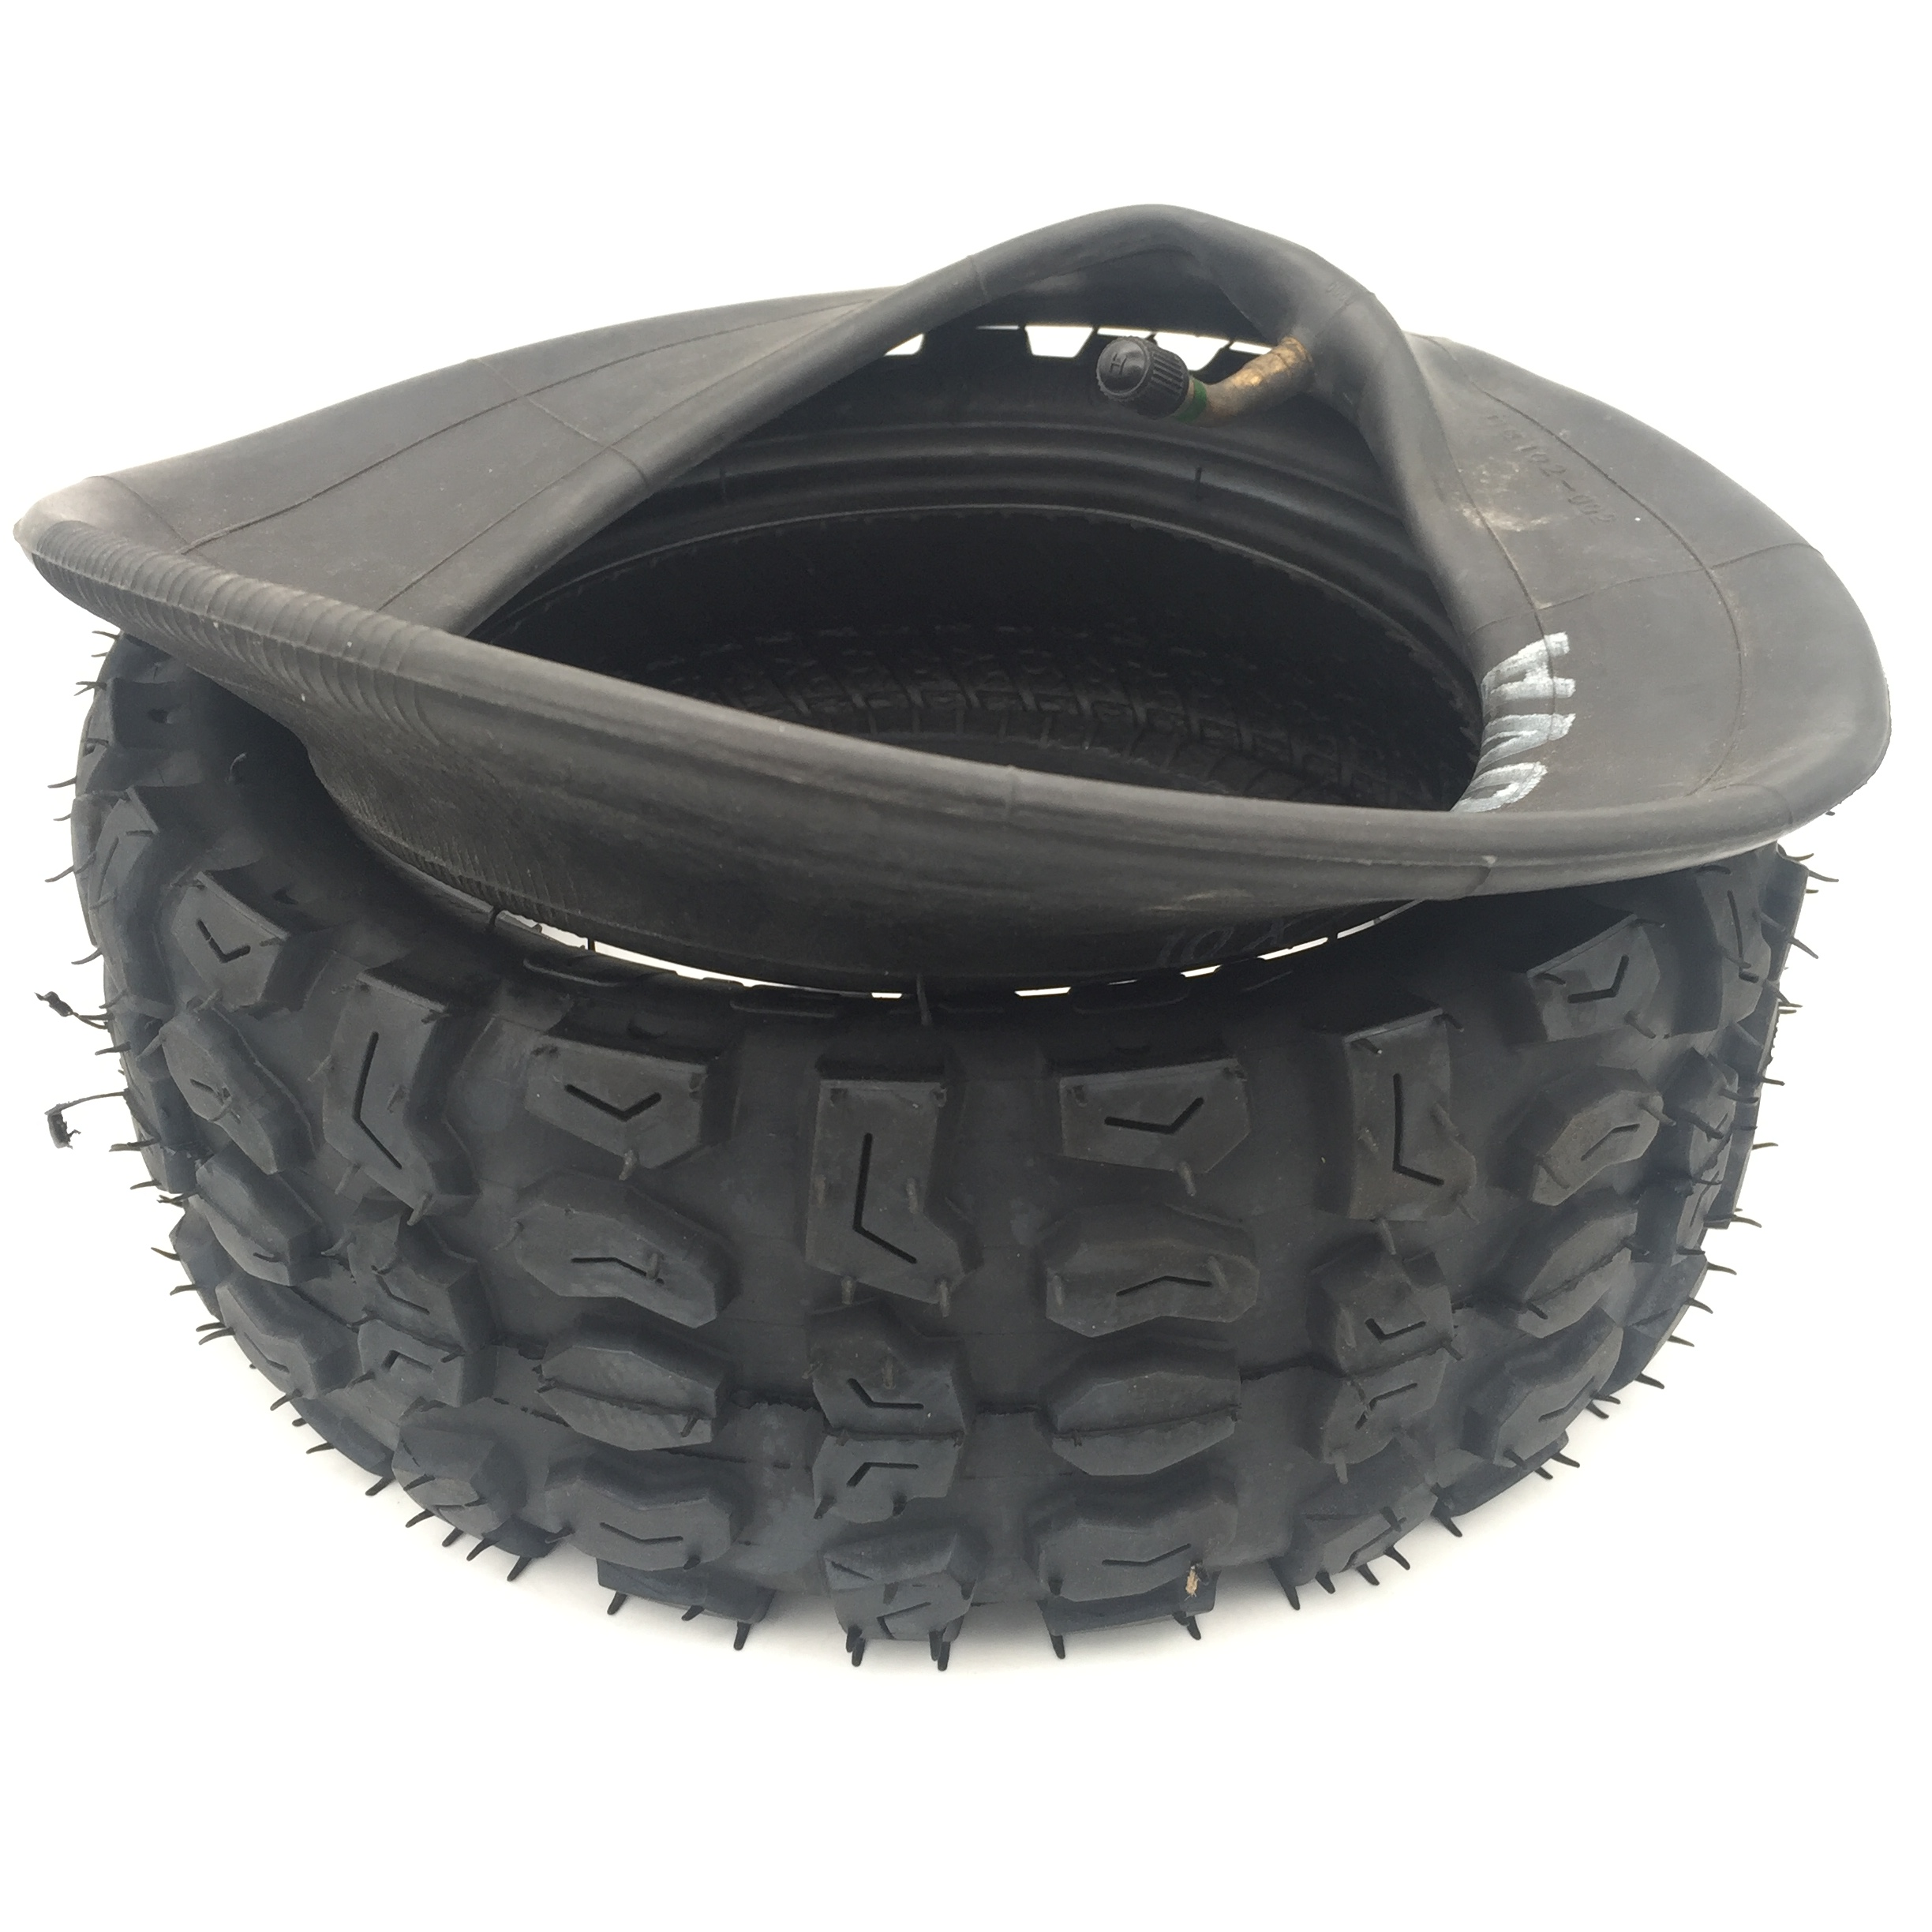 10 X 3 Inch Off Road Tyre And Tube for ZERO 10X electric scooter